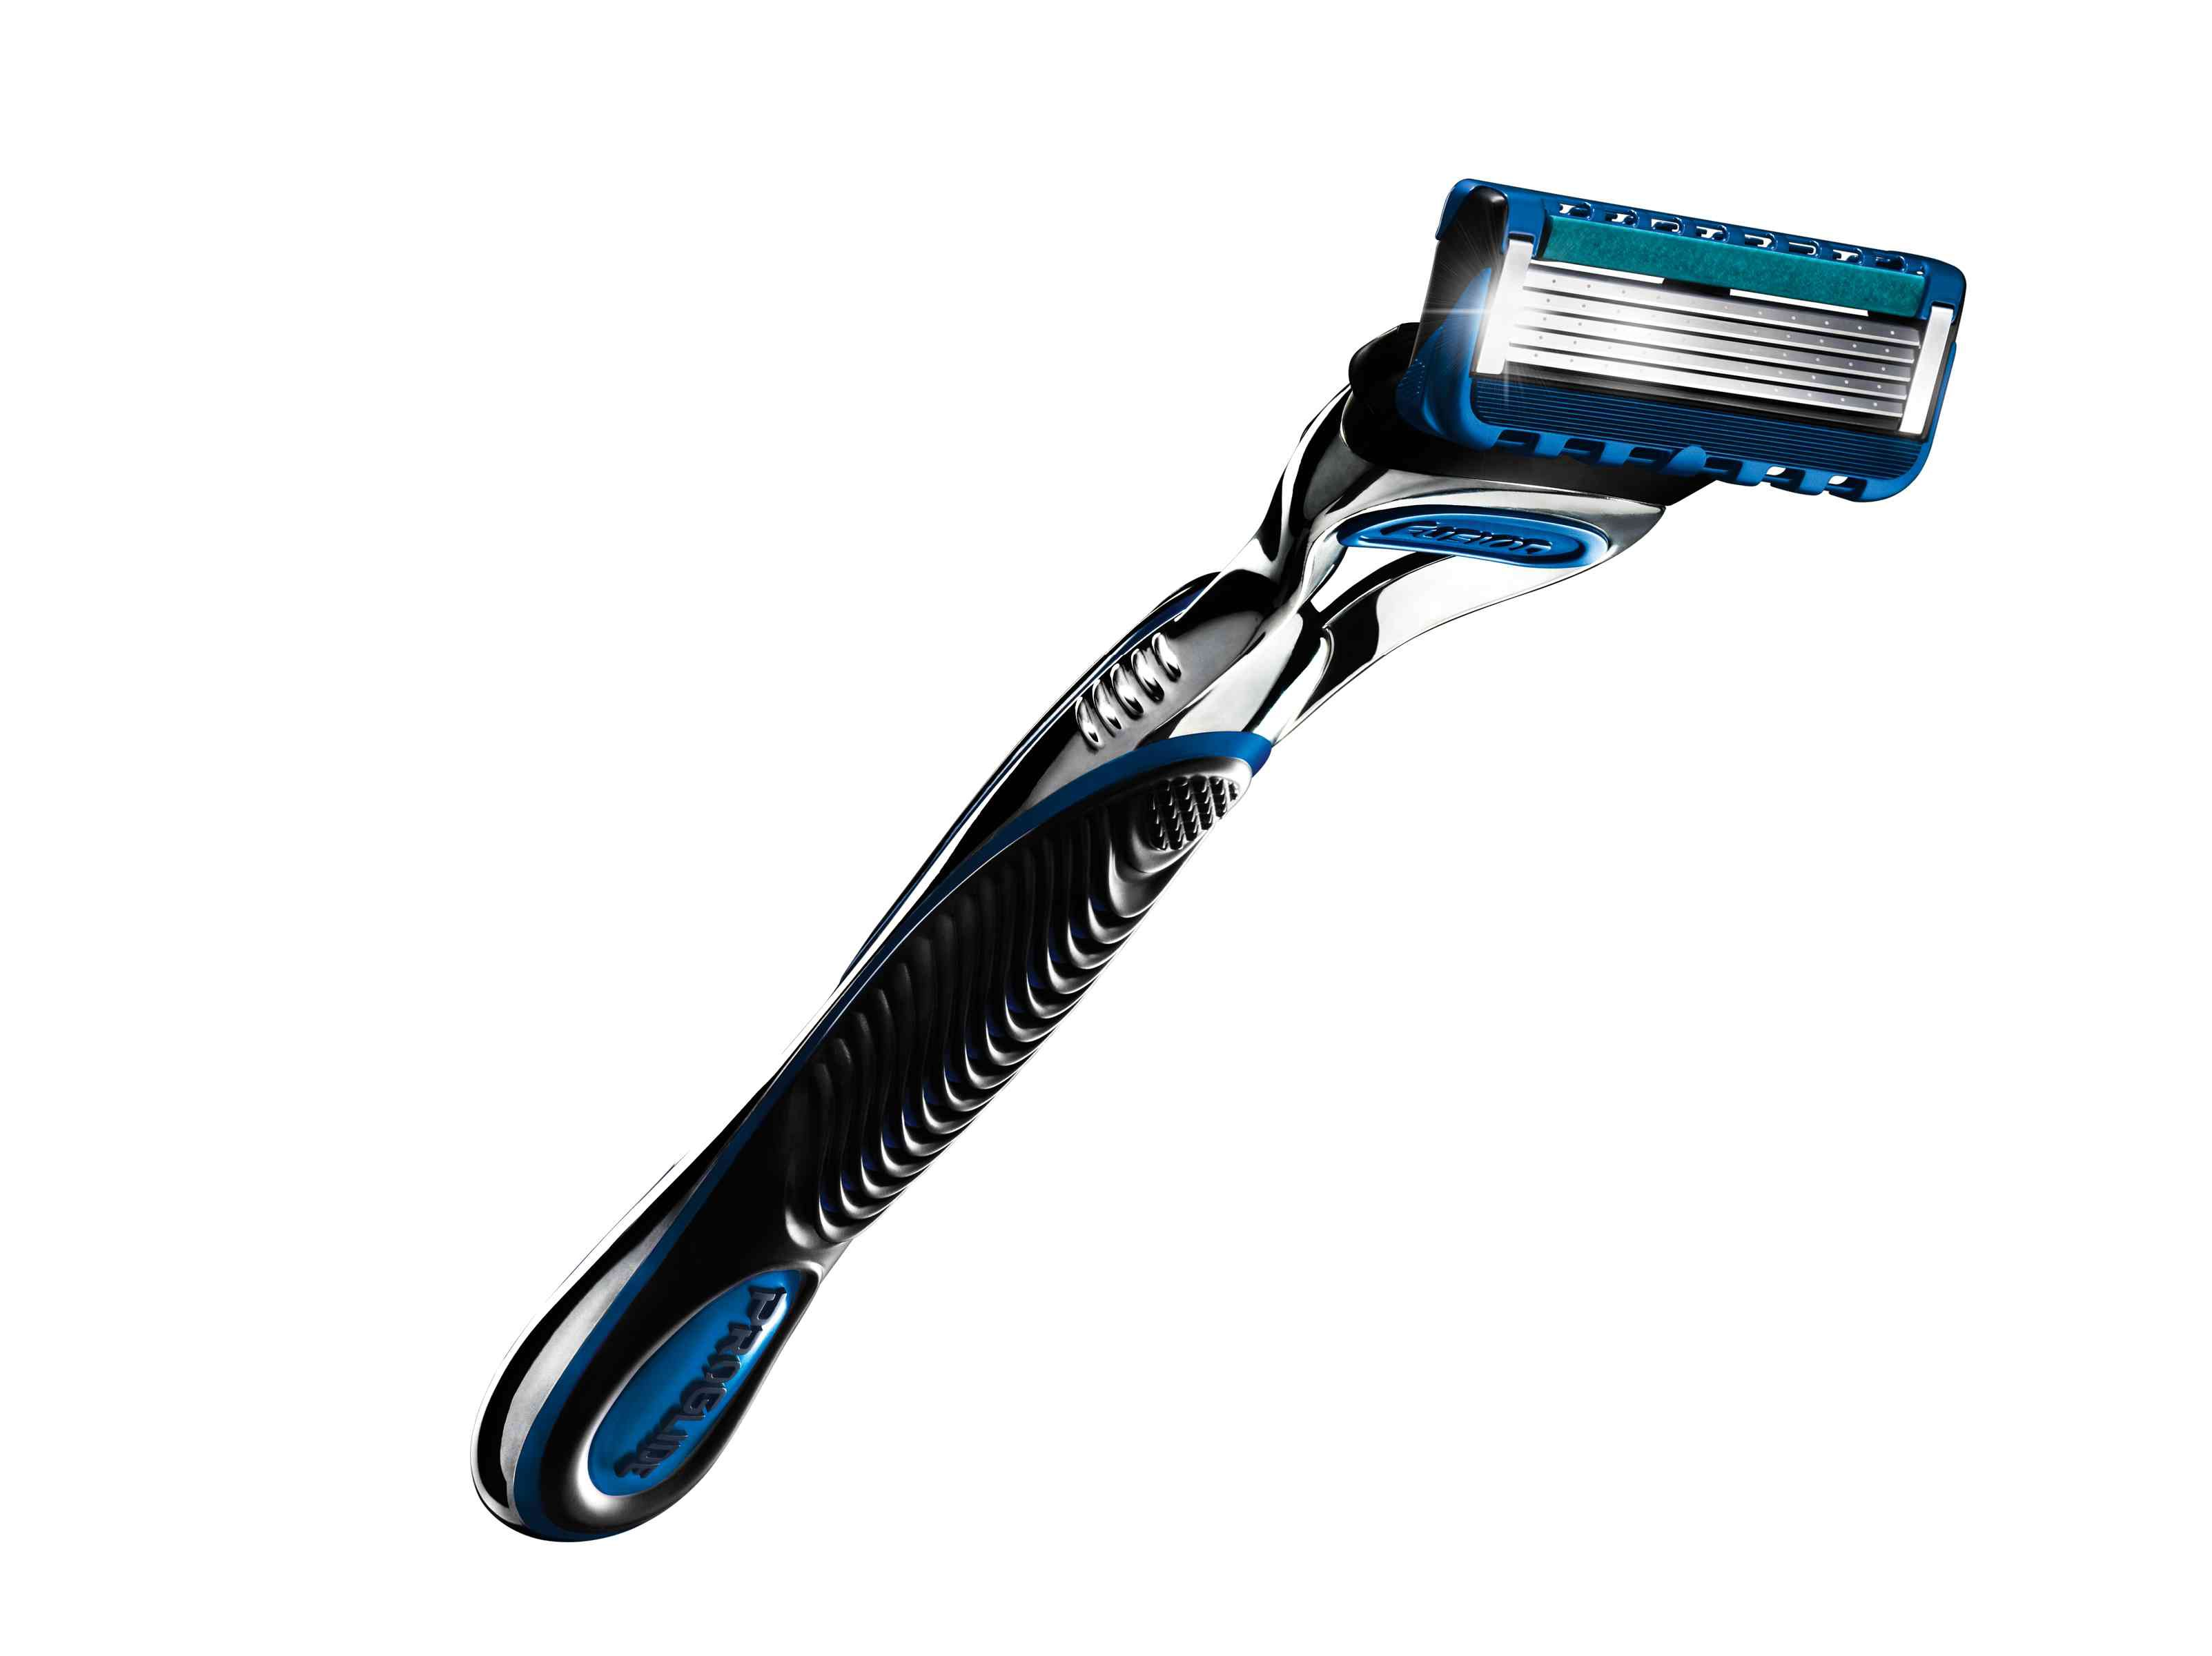 gillette indonesia Indonesia - indonesian israel - עִבְרִית  explore the latest price changes and save on most gillette blades and razors.